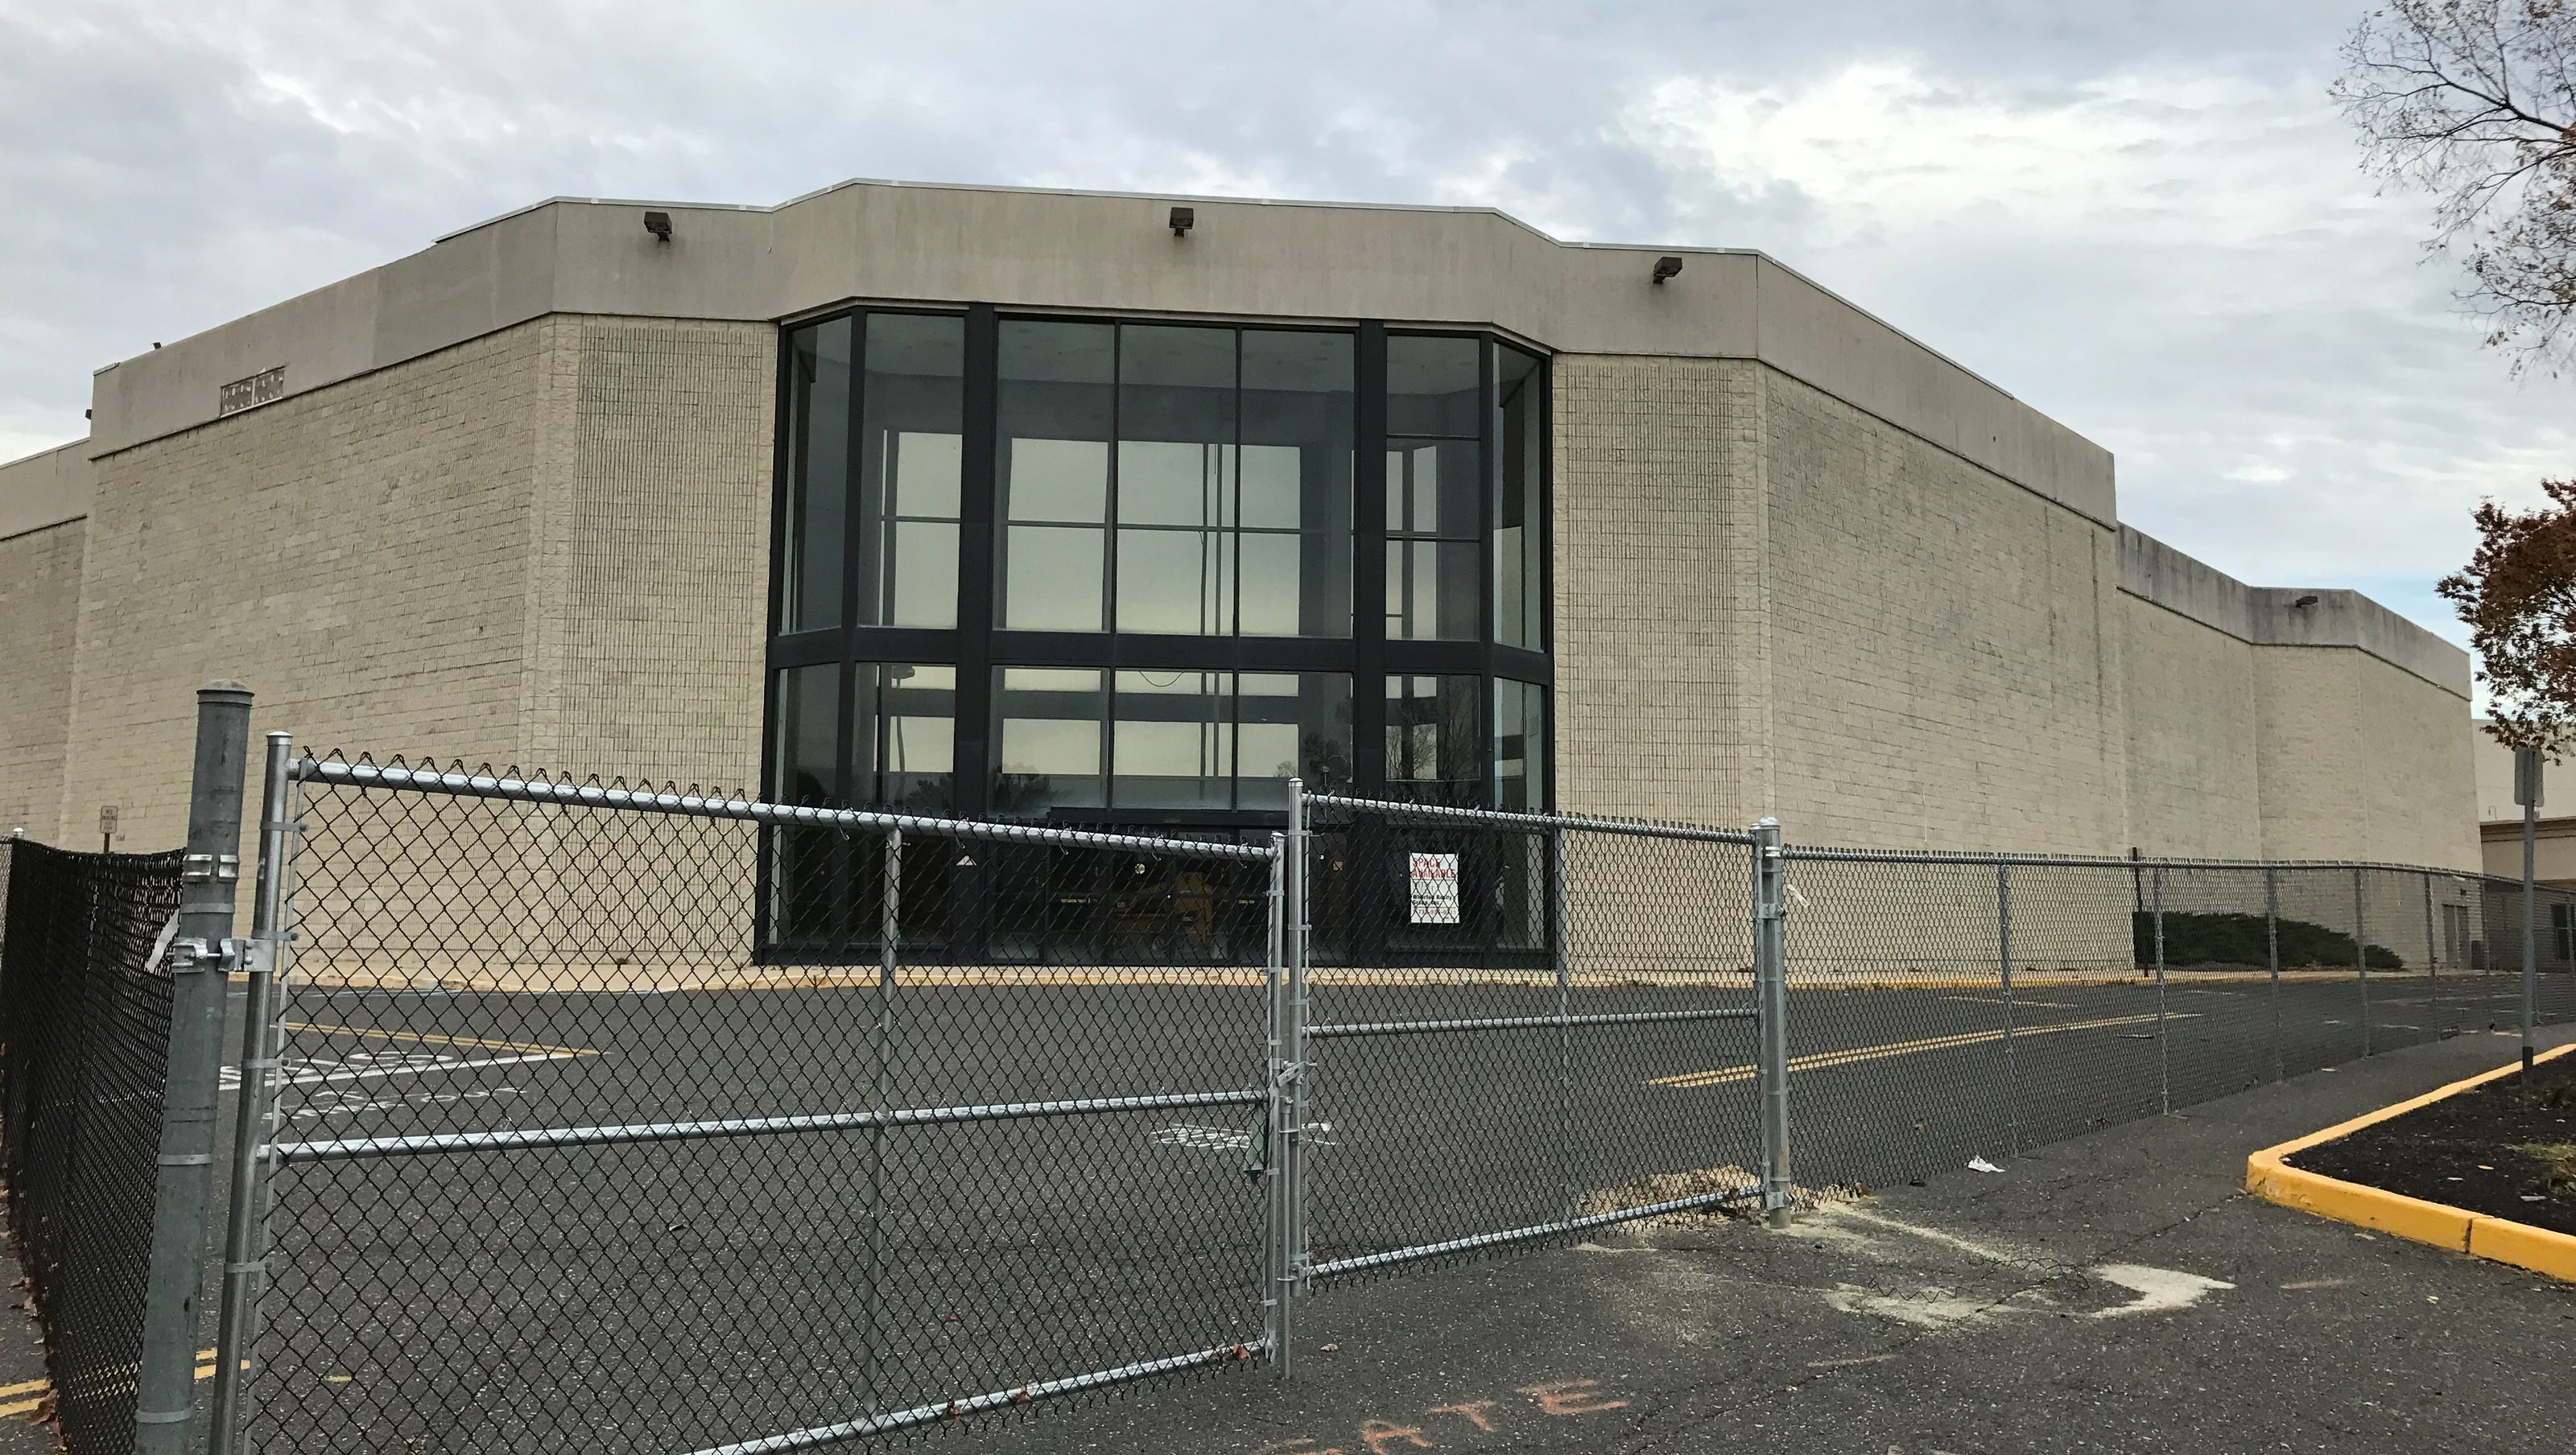 1 2 7 3 Down The Rockefeller Street: Seaview Square Tearing Down Building For New Stores